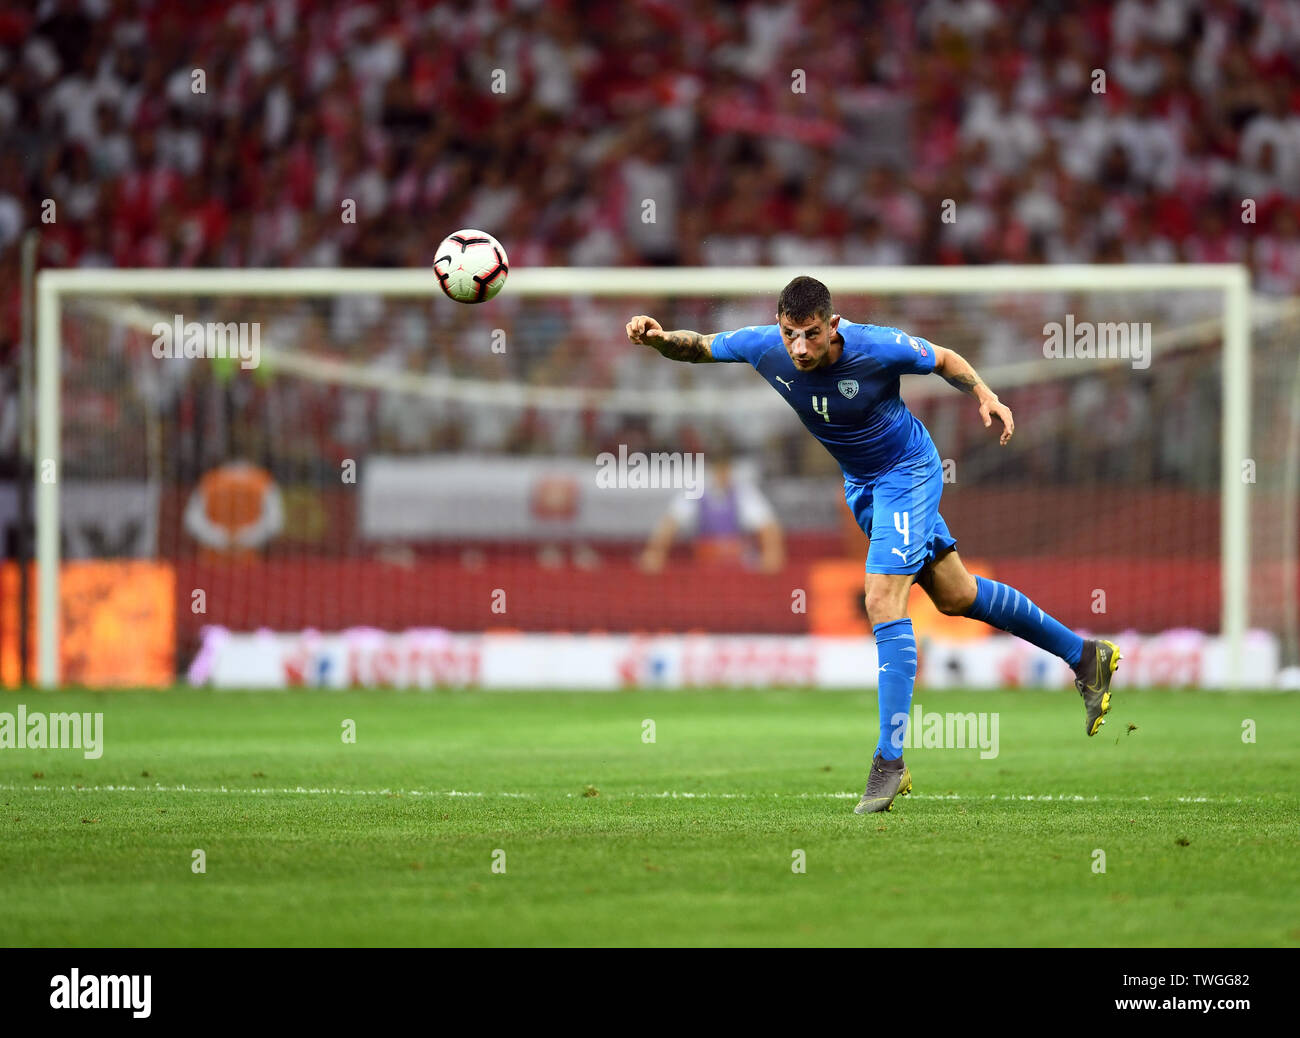 Warsaw, Poland, June 10, 2019: EURO 2020 qualifing round, group stage, Poland wins 4:0 with Izarel on PGE Narodowy. Nir Bitton (Izrael) headers the ball - Stock Image